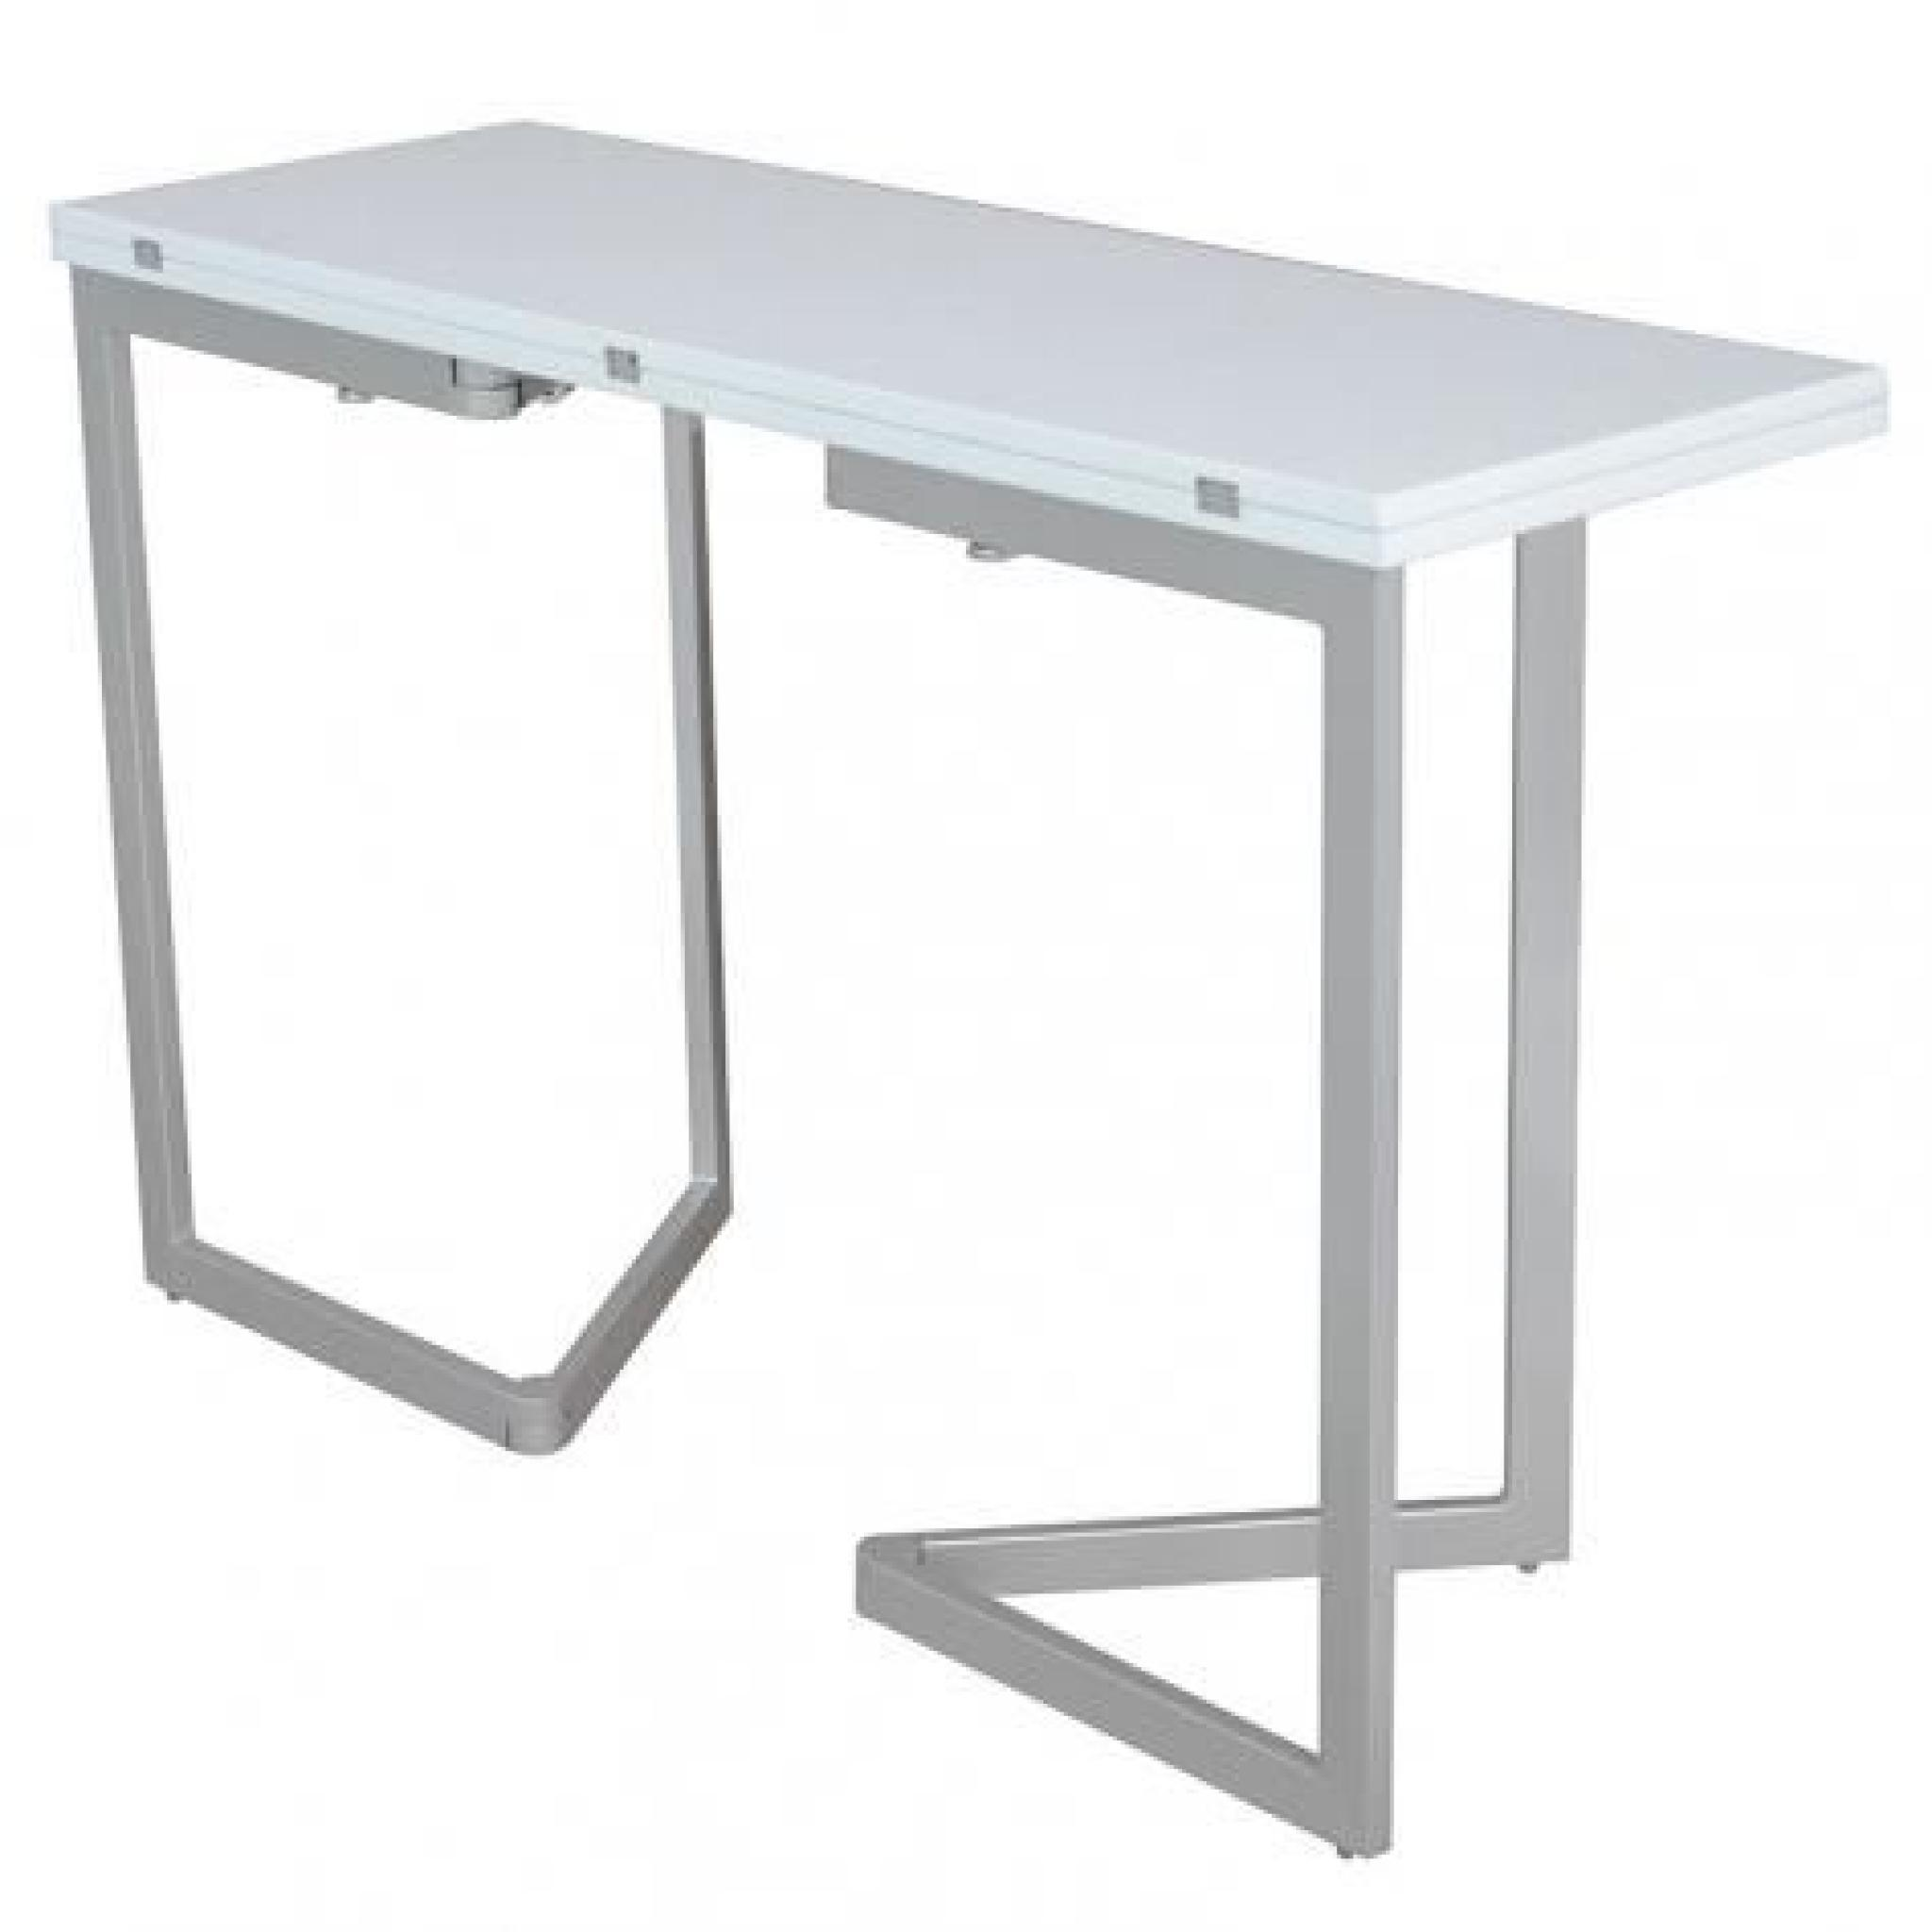 Table console extensible blanche laqu e talia achat for Table sejour extensible